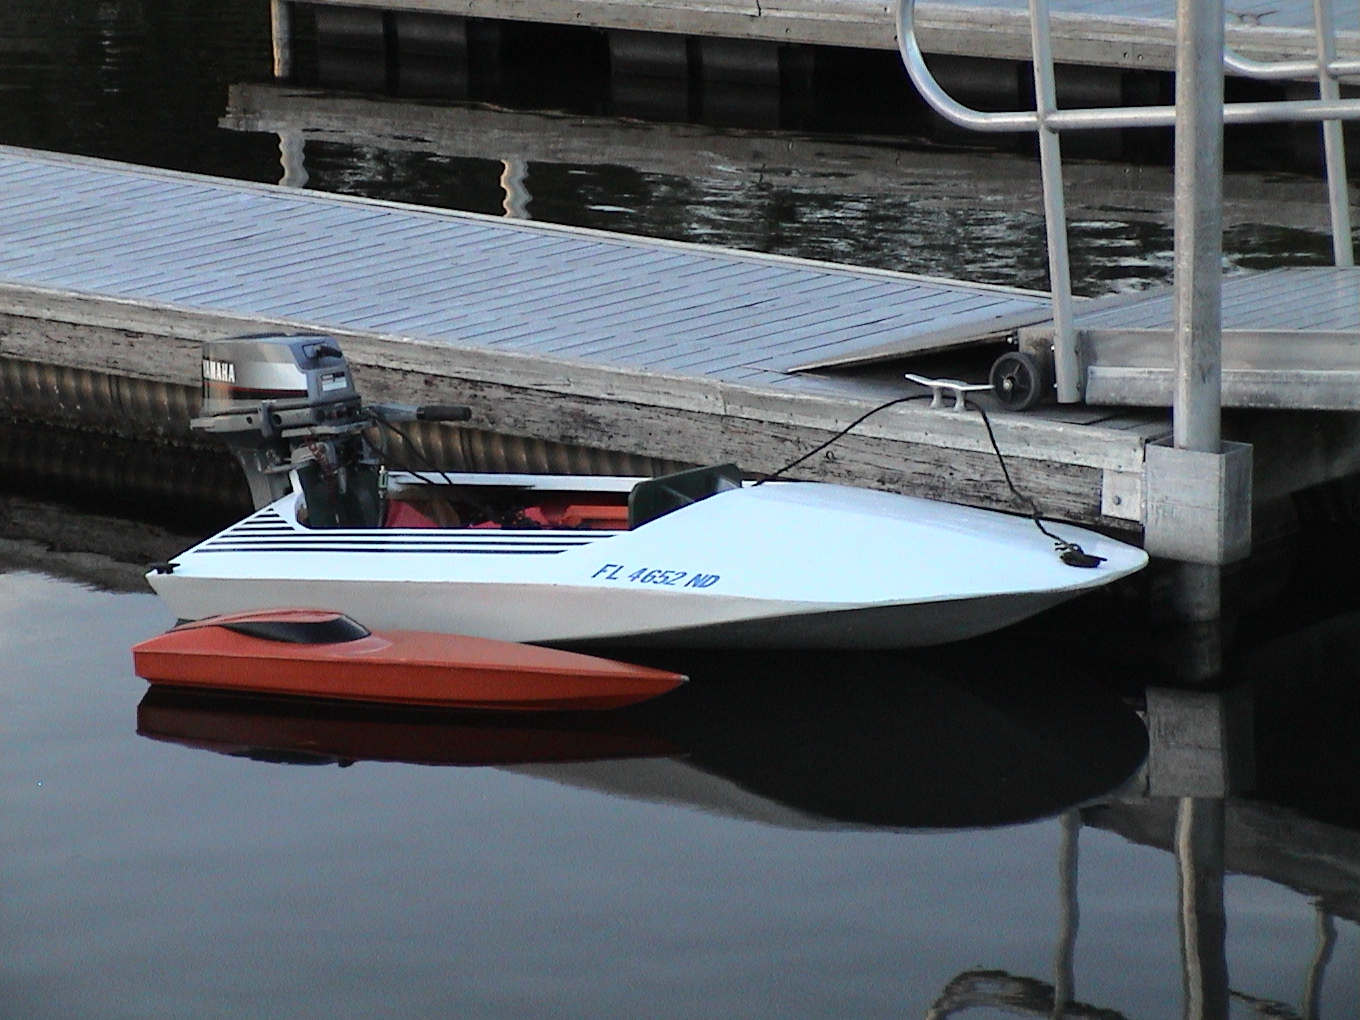 Minimost with RC boat - Boat Design Net Gallery